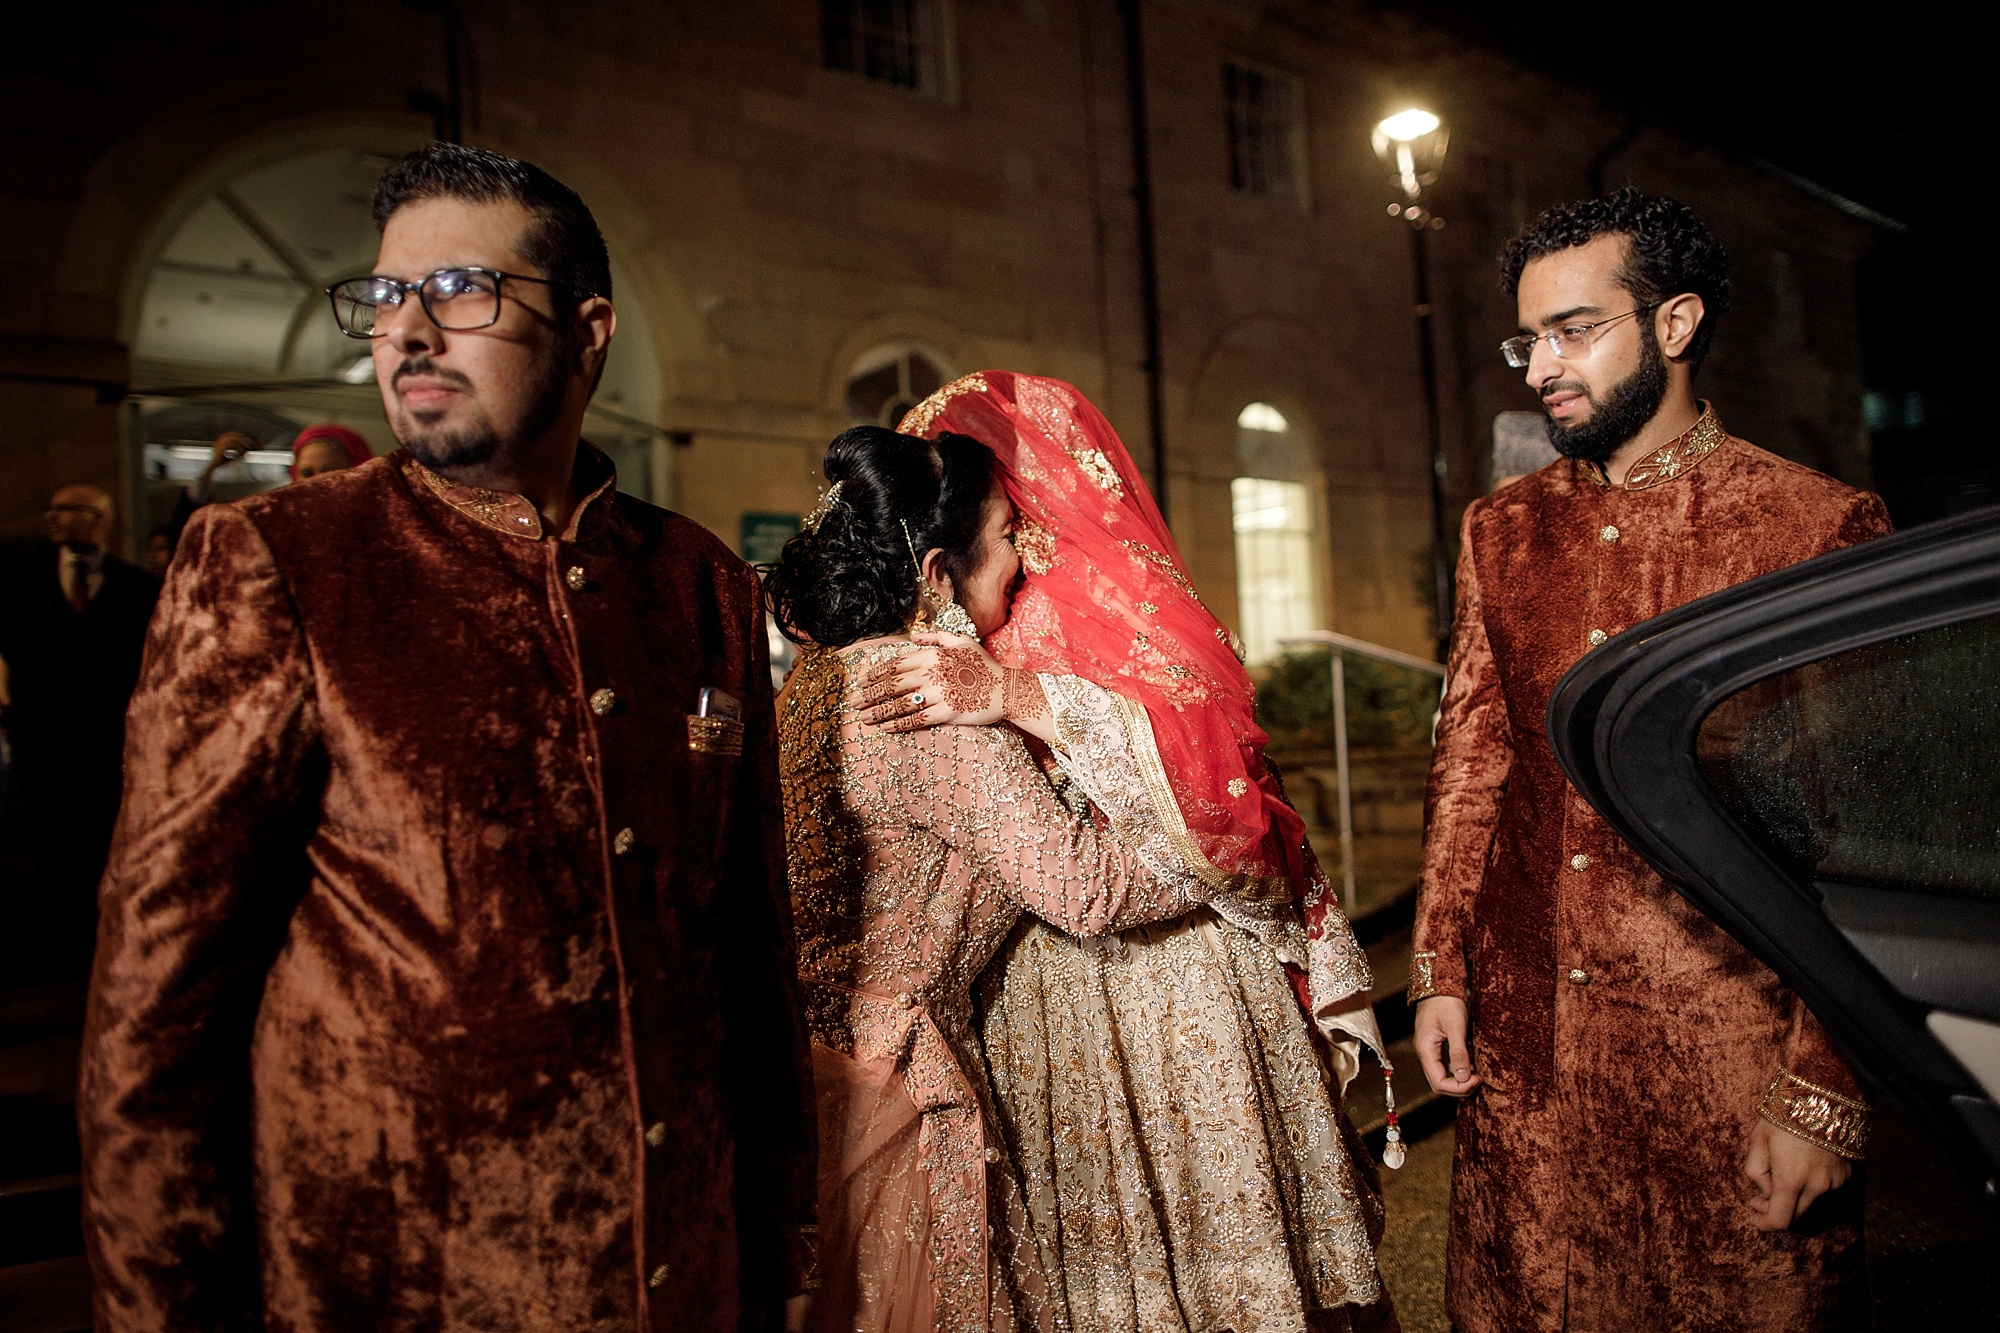 Pakistani Wedding rukhsati photography at Devonshire Dome